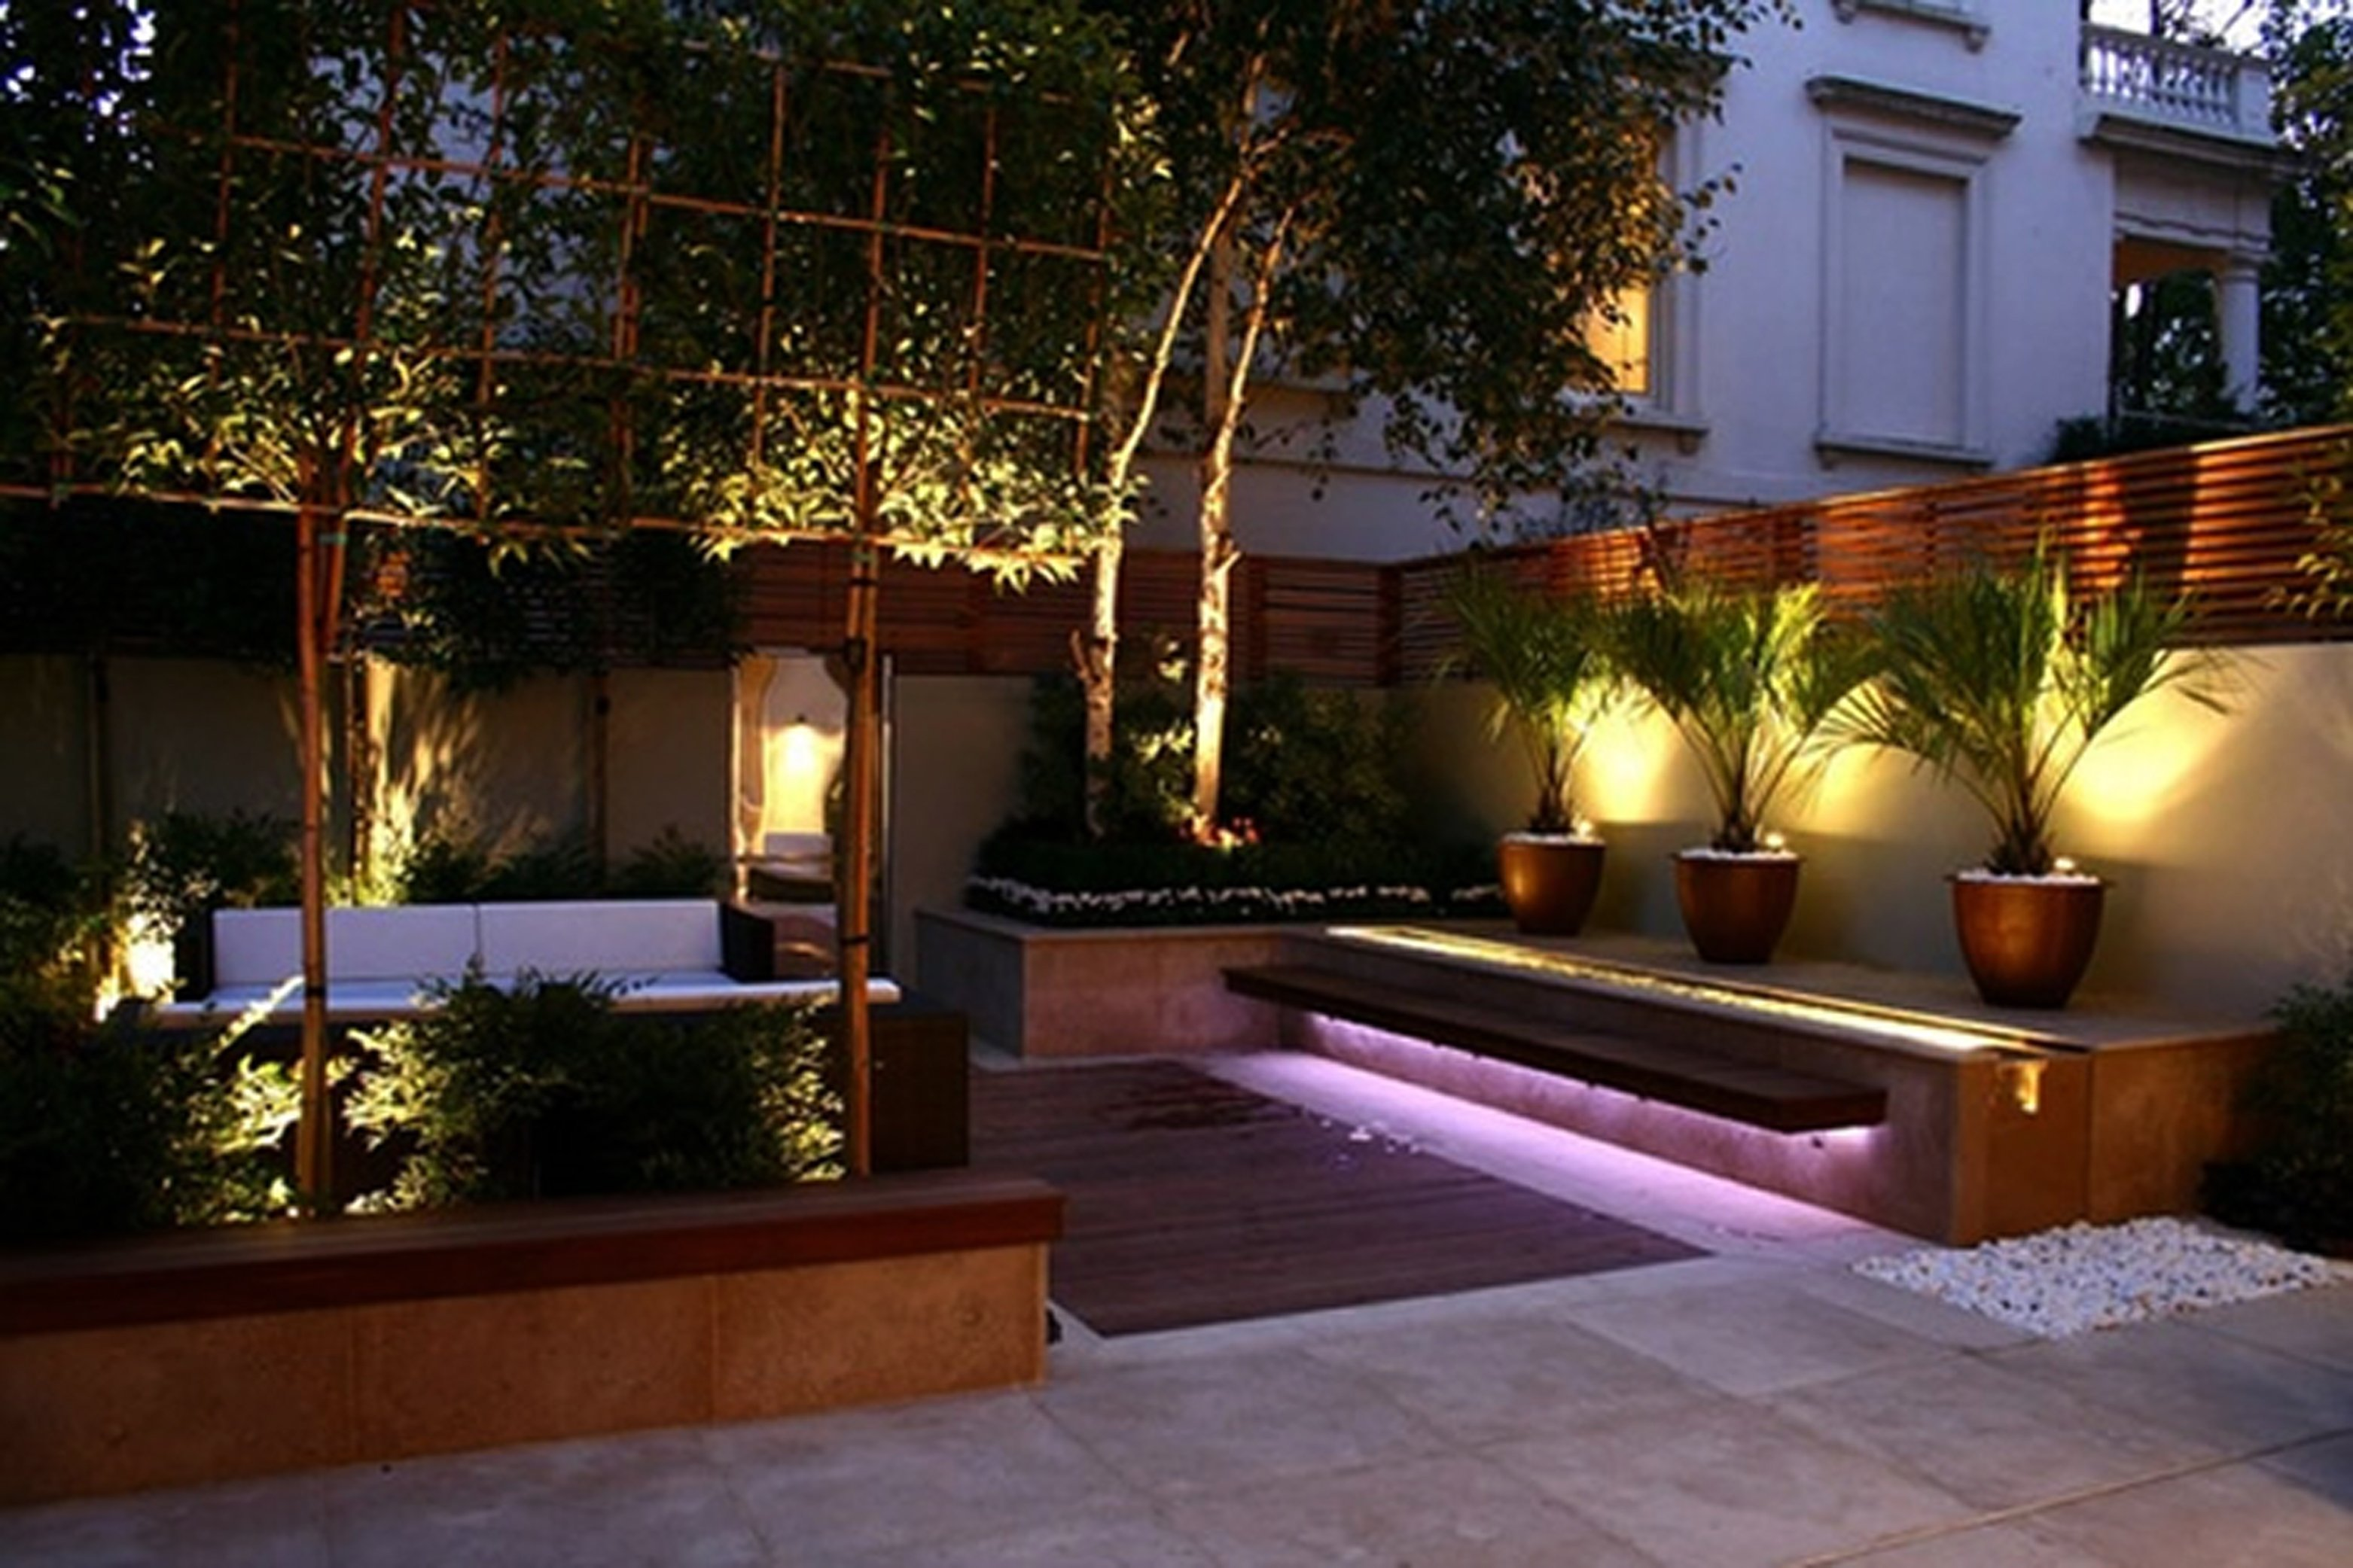 Ideas para decorar exteriores en primavera for Decoracion jardines exteriores